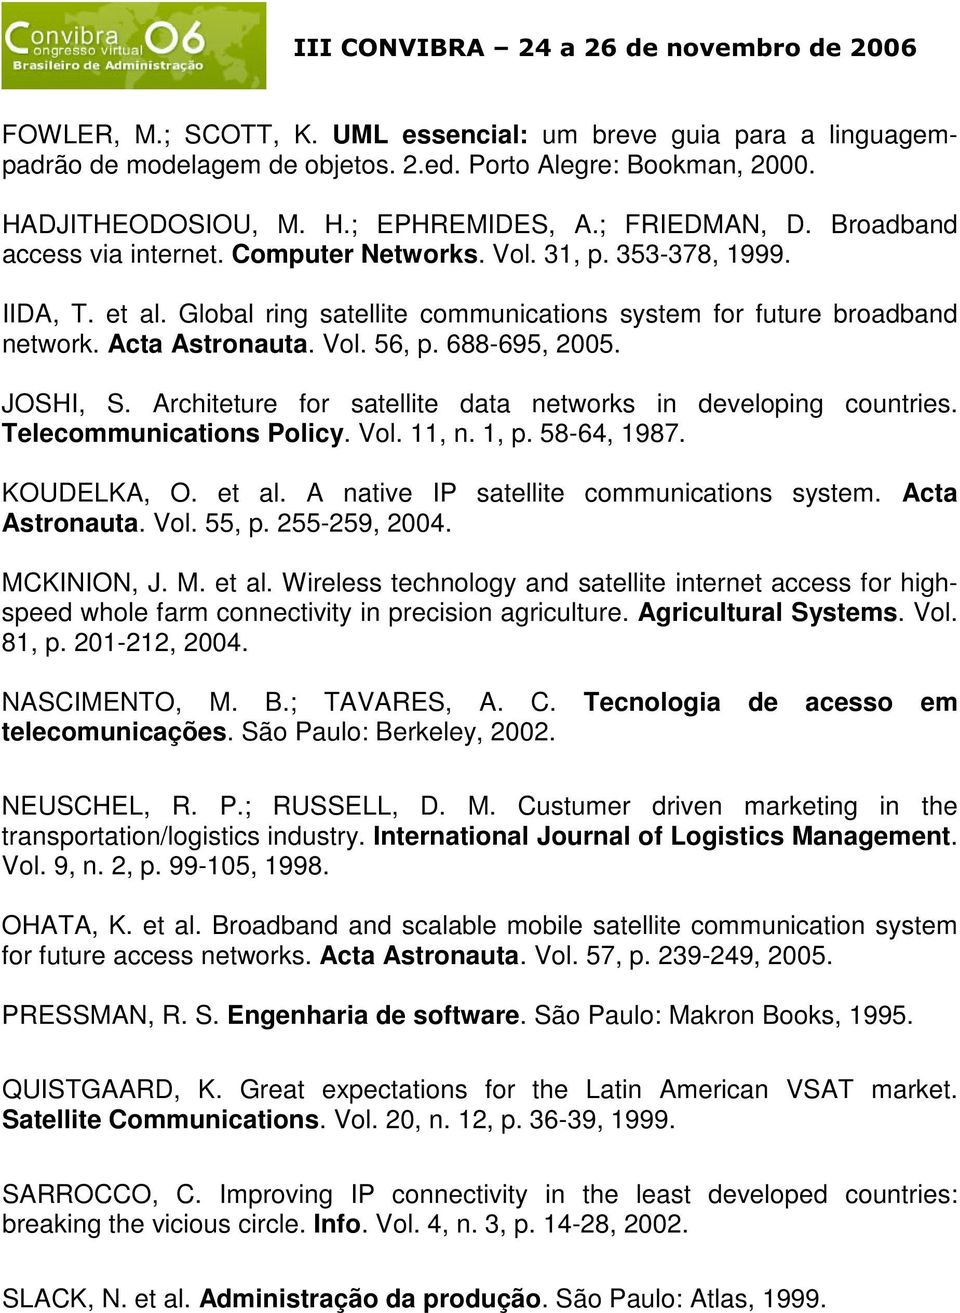 688-695, 2005. JOSHI, S. Architeture for satellite data networks in developing countries. Telecommunications Policy. Vol. 11, n. 1, p. 58-64, 1987. KOUDELKA, O. et al.